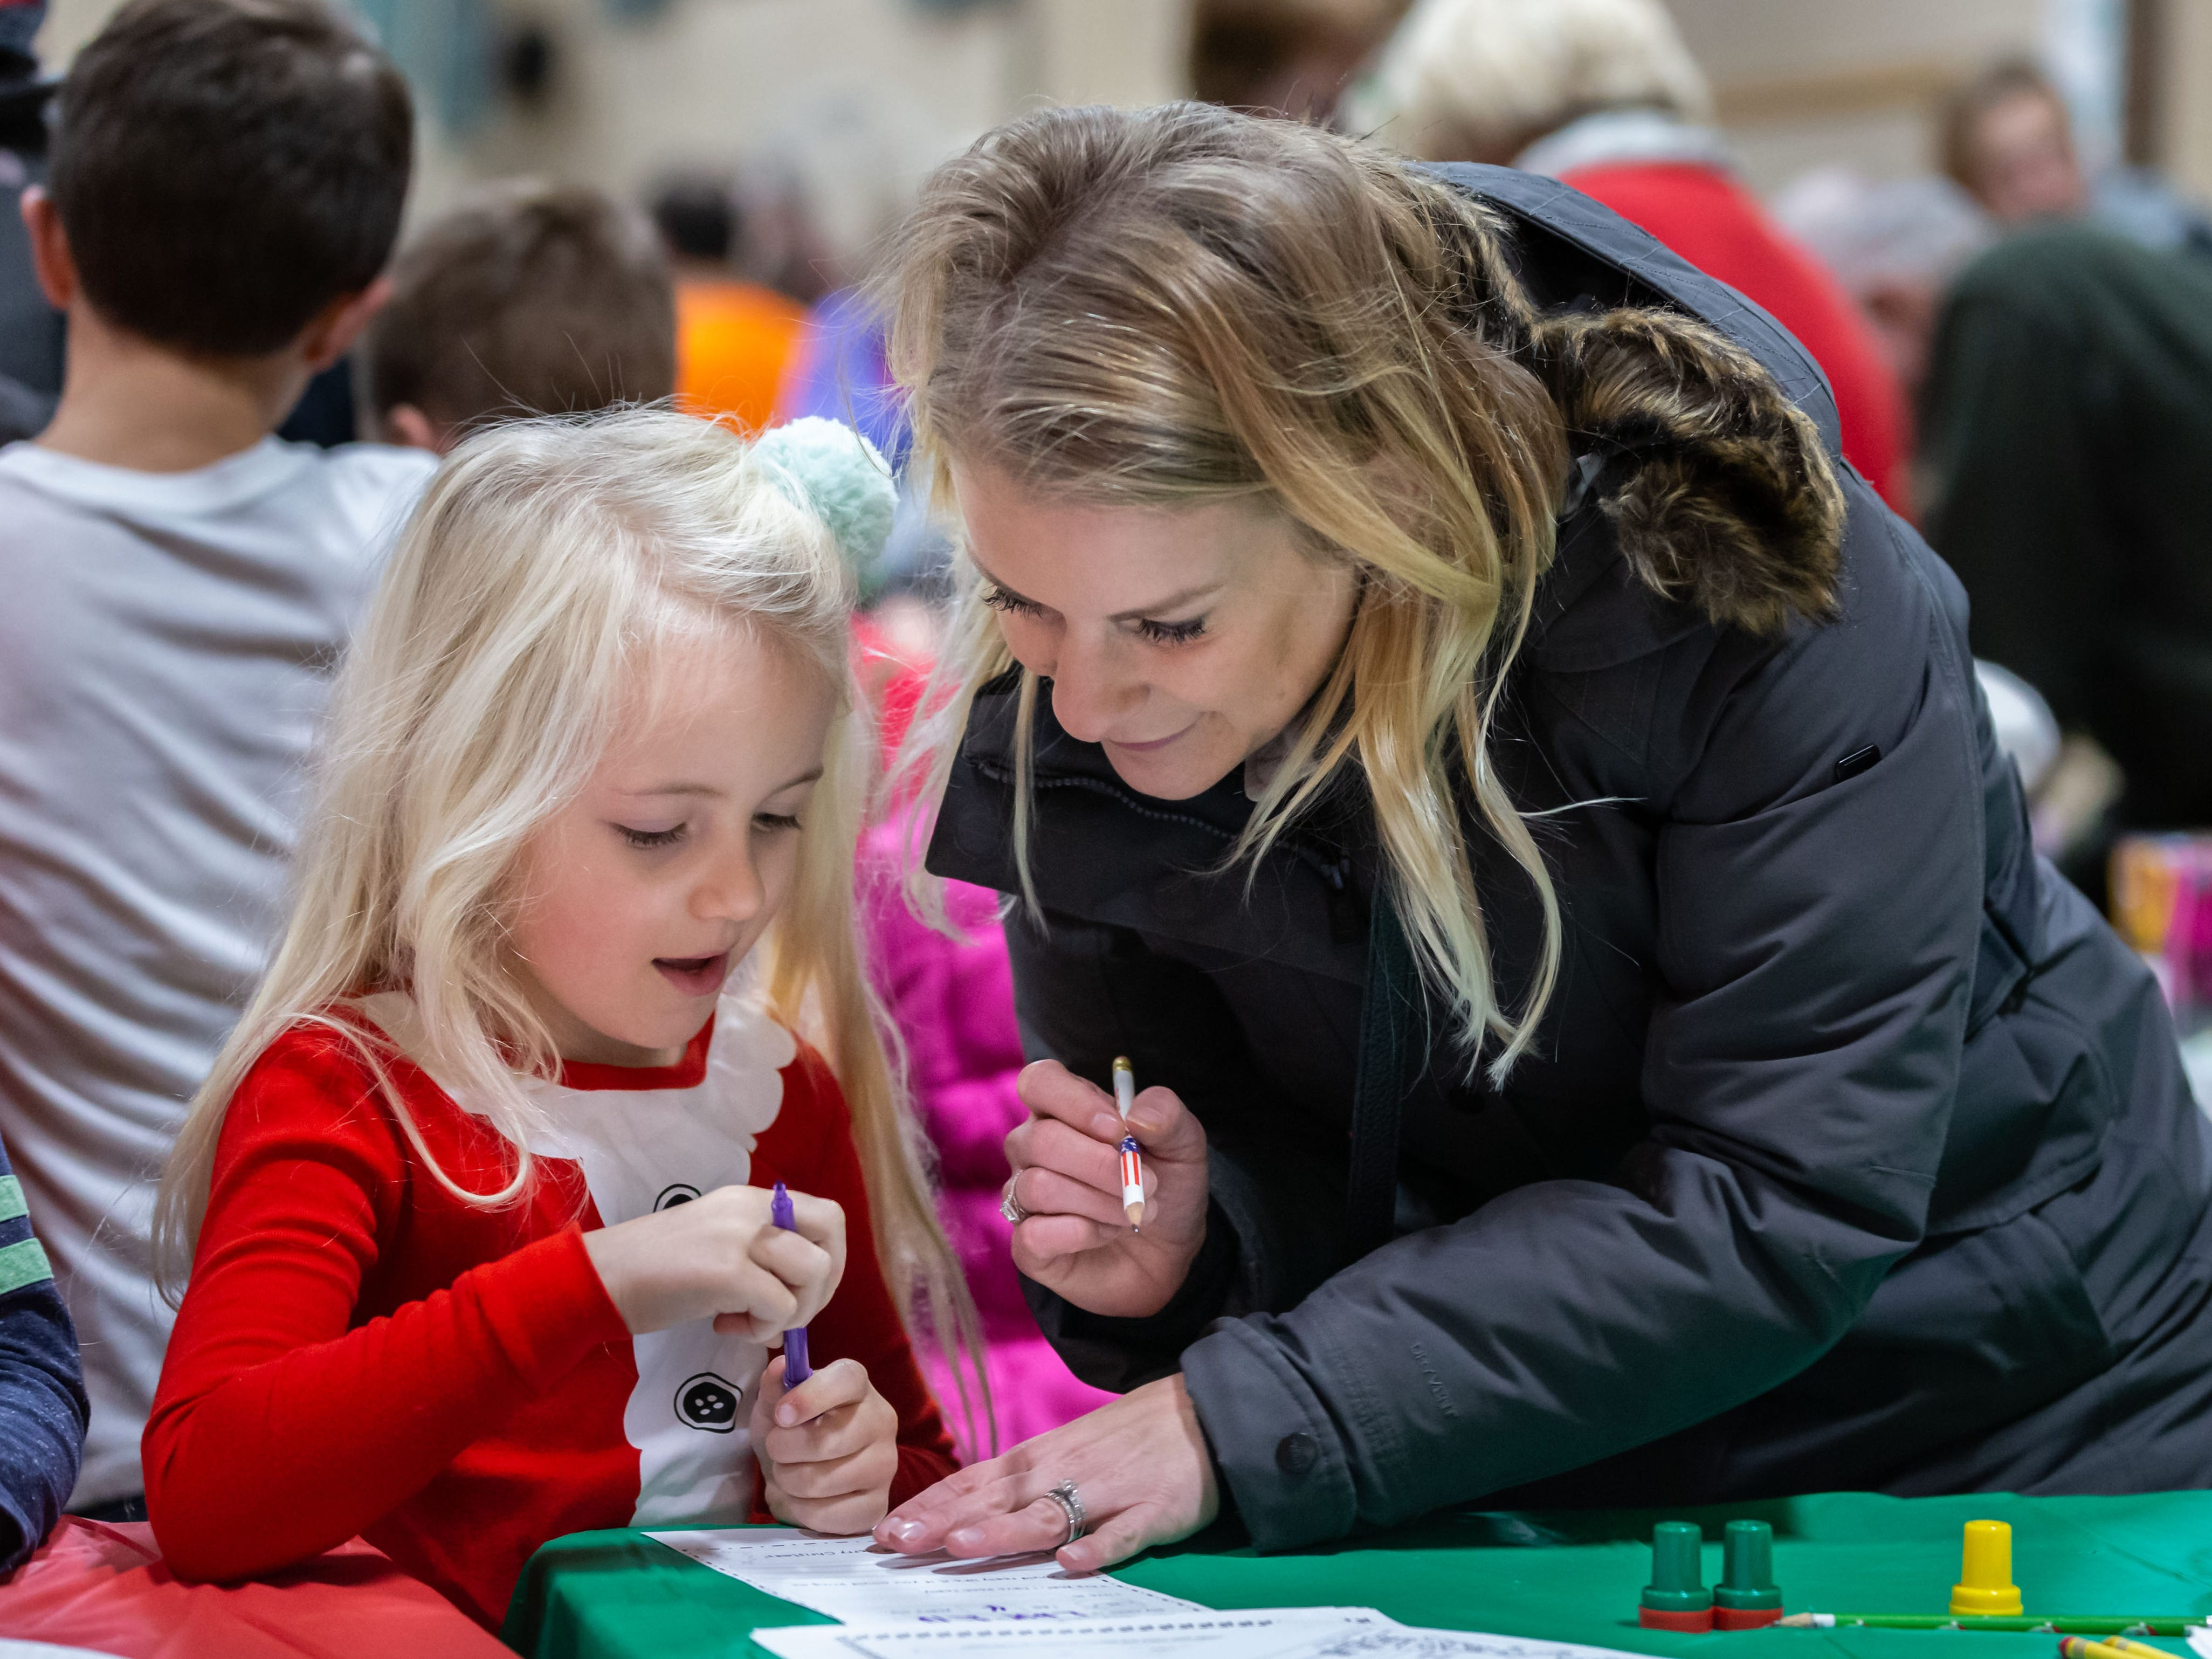 Sarah Fitting of Cedarburg helps four-year-old Lauren Dykstra write a letter to Santa during Cedarburg's annual tree lighting ceremony at the Community Center on Monday, Nov. 26, 2018. The event, hosted by Cedarburg Chamber of Commerce, features make-and-take crafts, cookies, cider, music, caroling and a visit from Santa to light the tree.